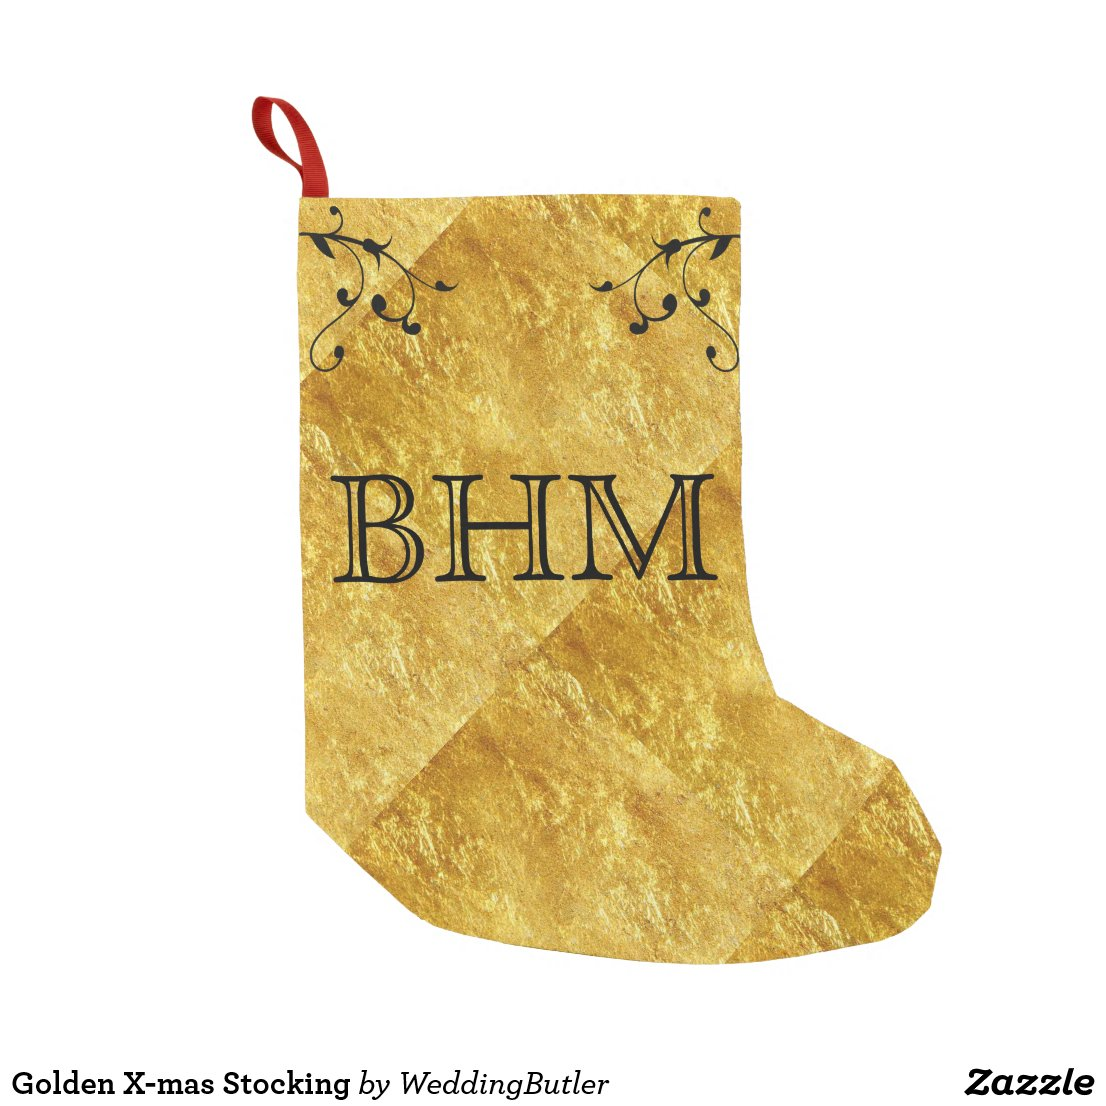 Golden X-mas Stocking